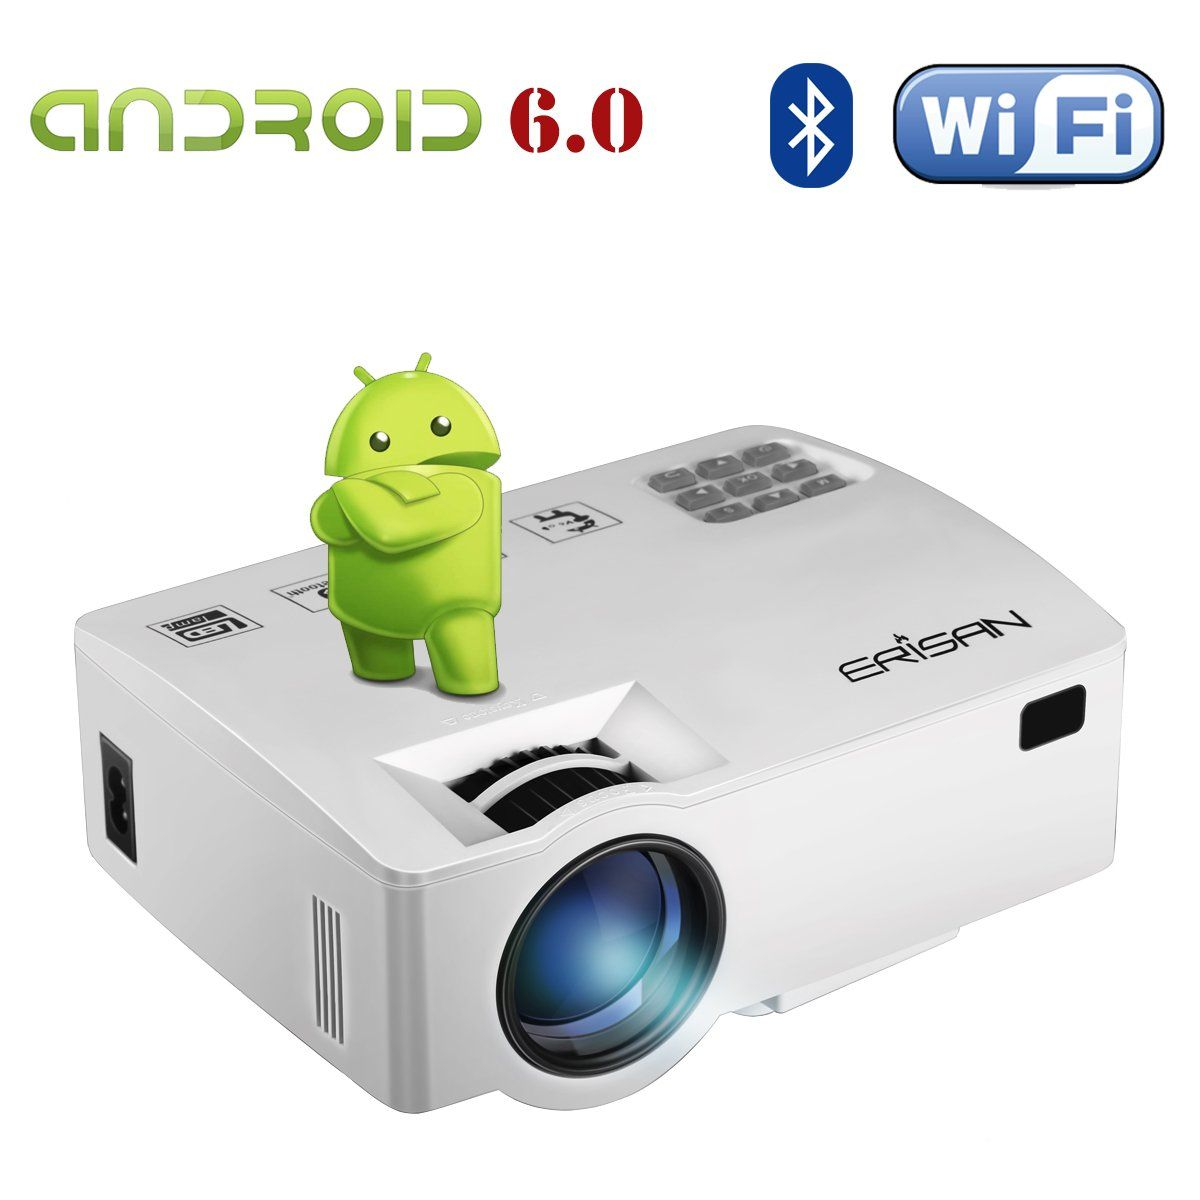 Erisan Android 60 Projectorwarranty Included Built In Wifi Worlds Smallest Hf Receiverquot Kn0ck Integrated Rtlsdr Upconverter Bluetooth Mini Smart